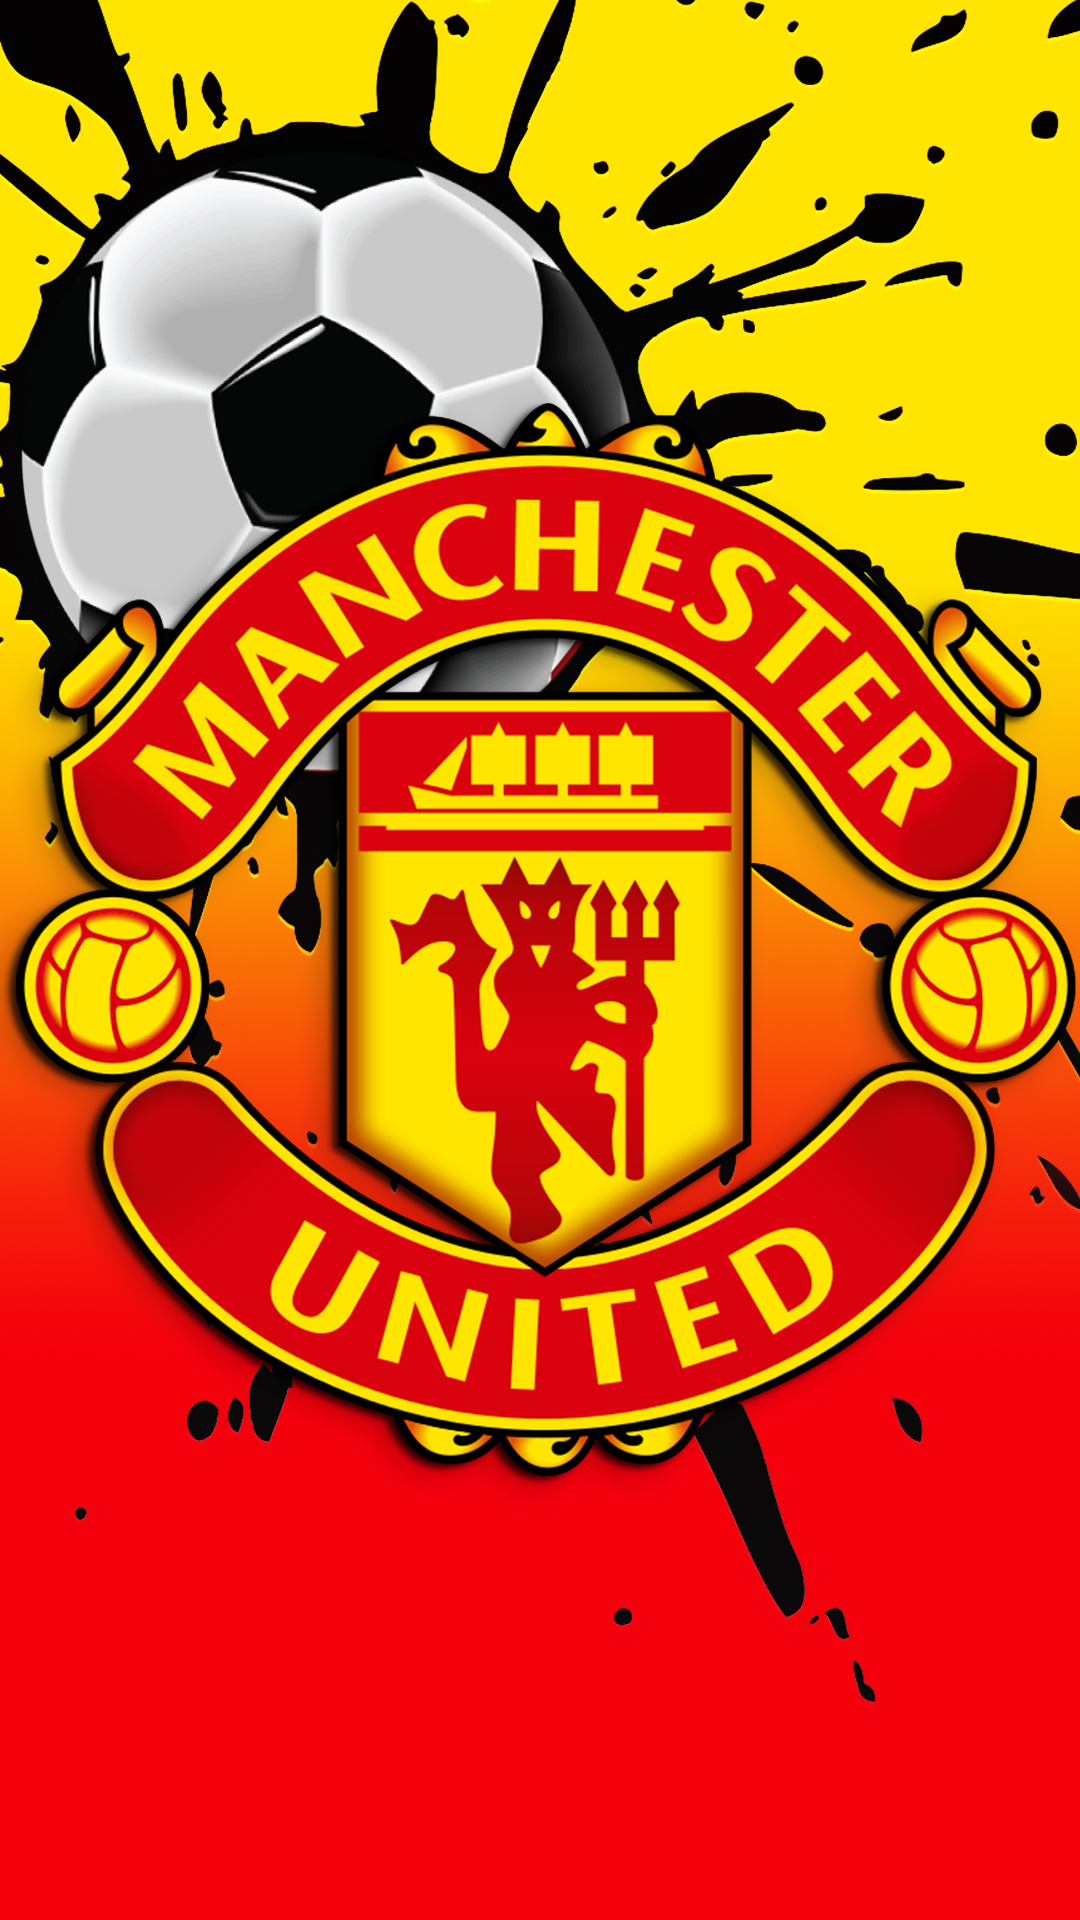 manchester united wallpaper download posted by ethan walker manchester united wallpaper download